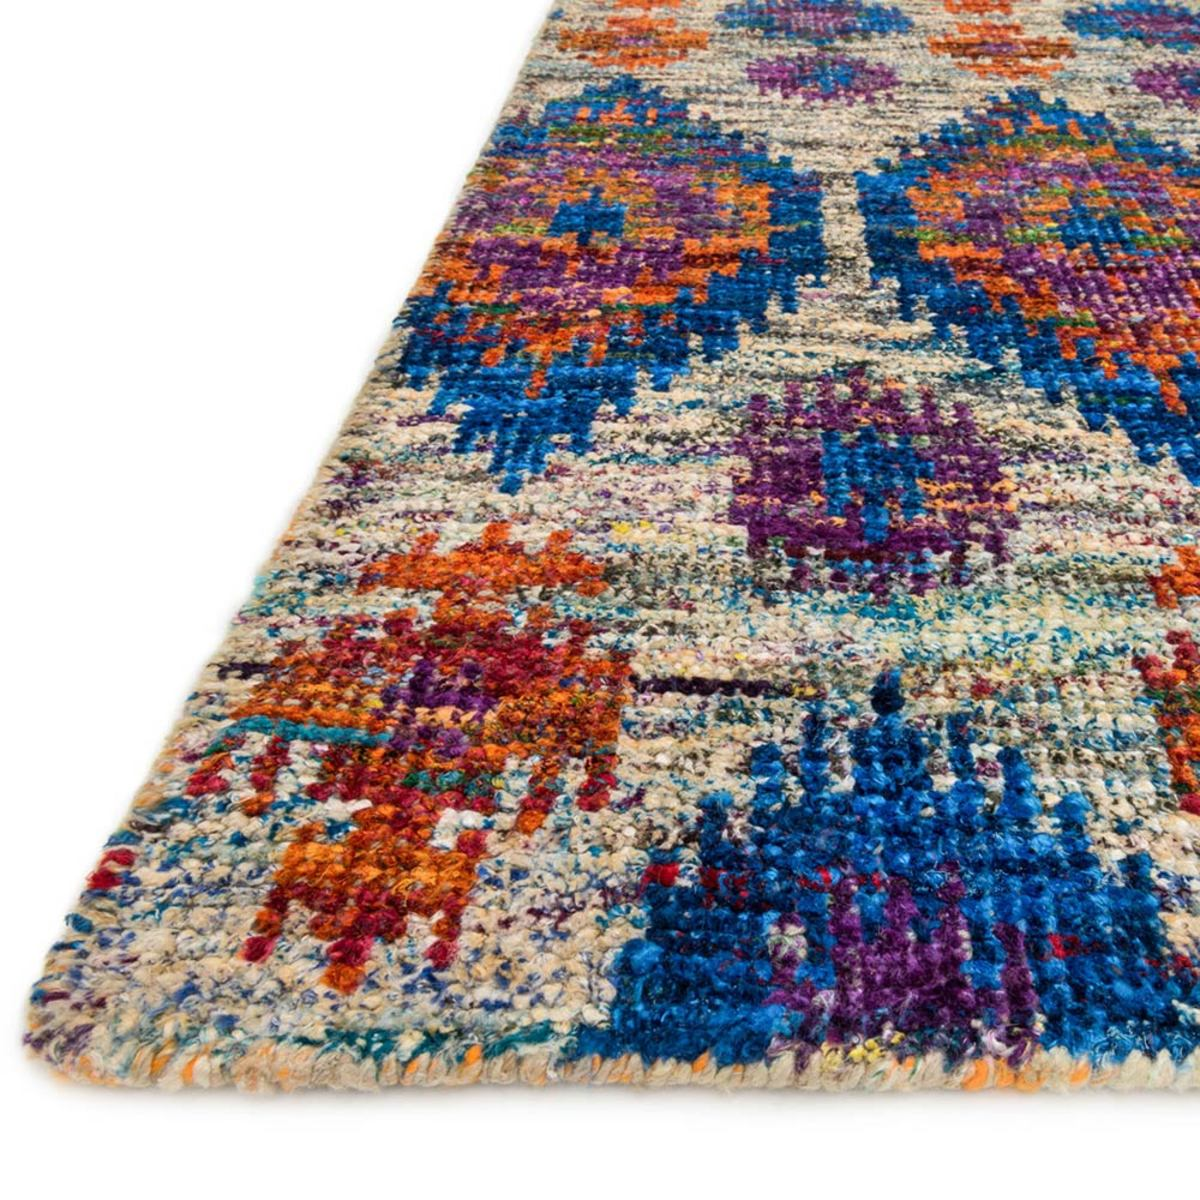 "Loloi Giselle Blue Ikat Rug in Mediterranean - 5'6"" x 8'6""  - Peacock"